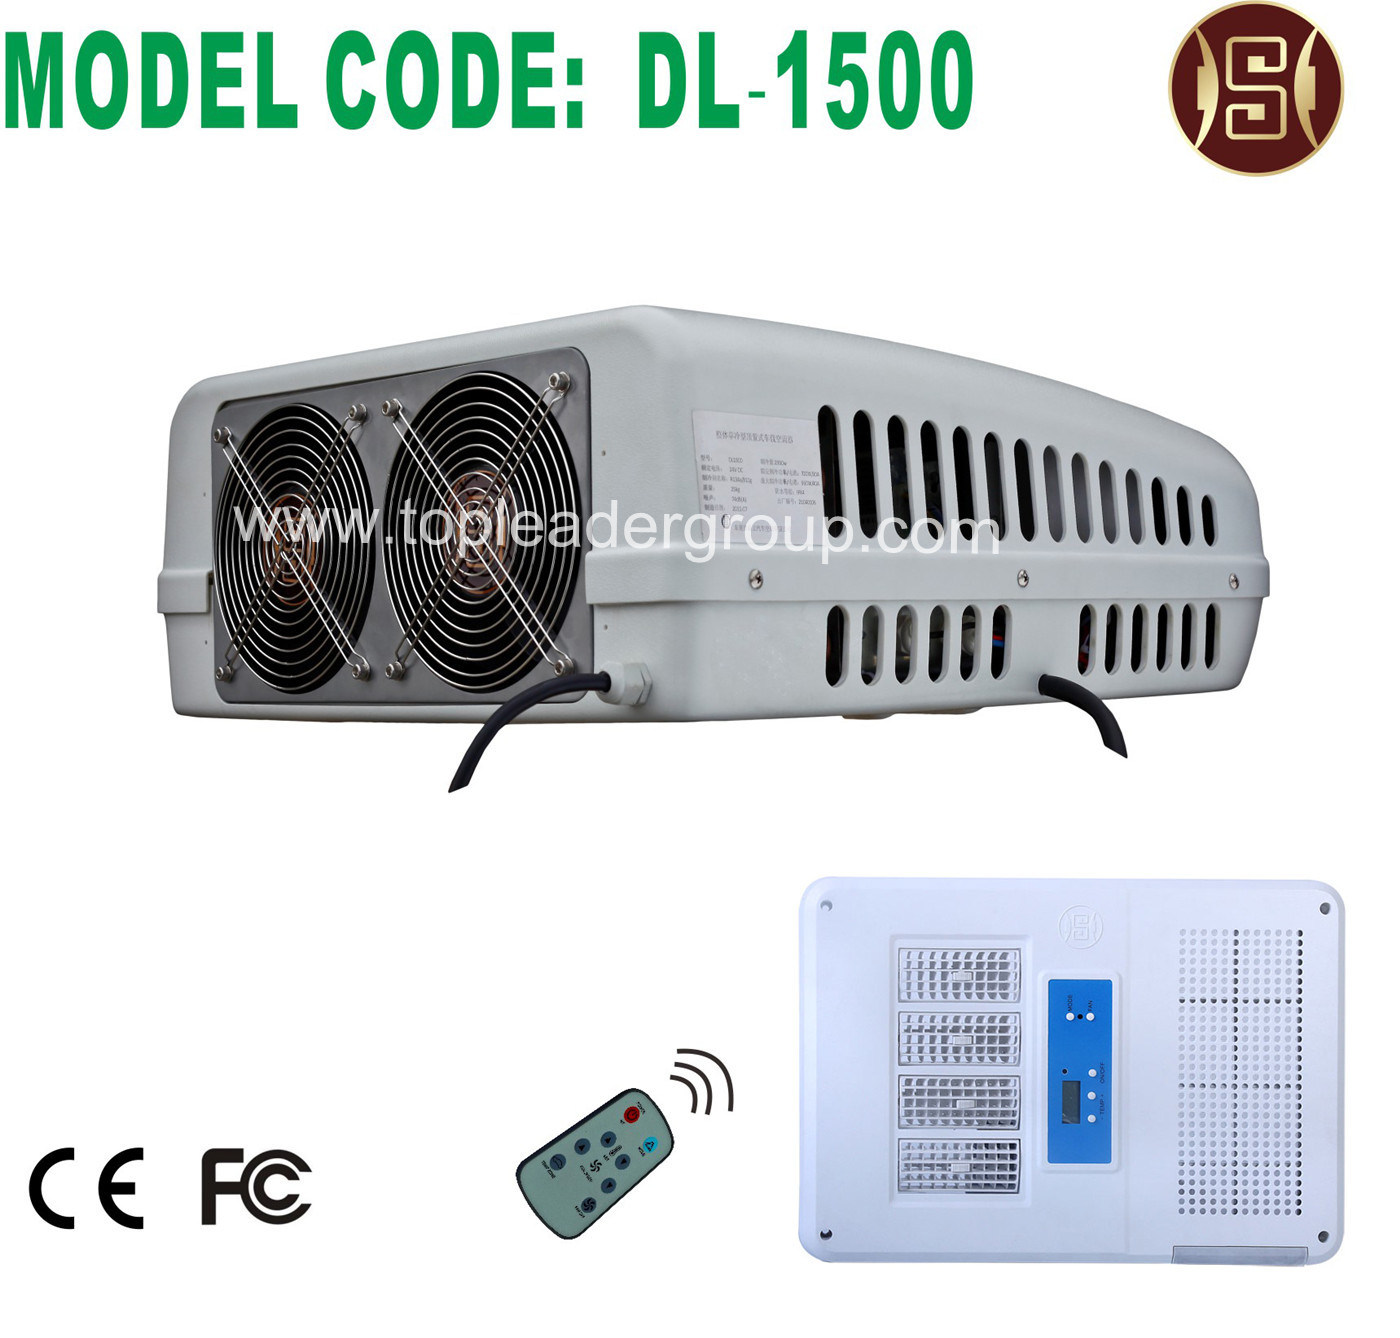 air conditioner 24vdc dl 1500 air conditioner. Black Bedroom Furniture Sets. Home Design Ideas